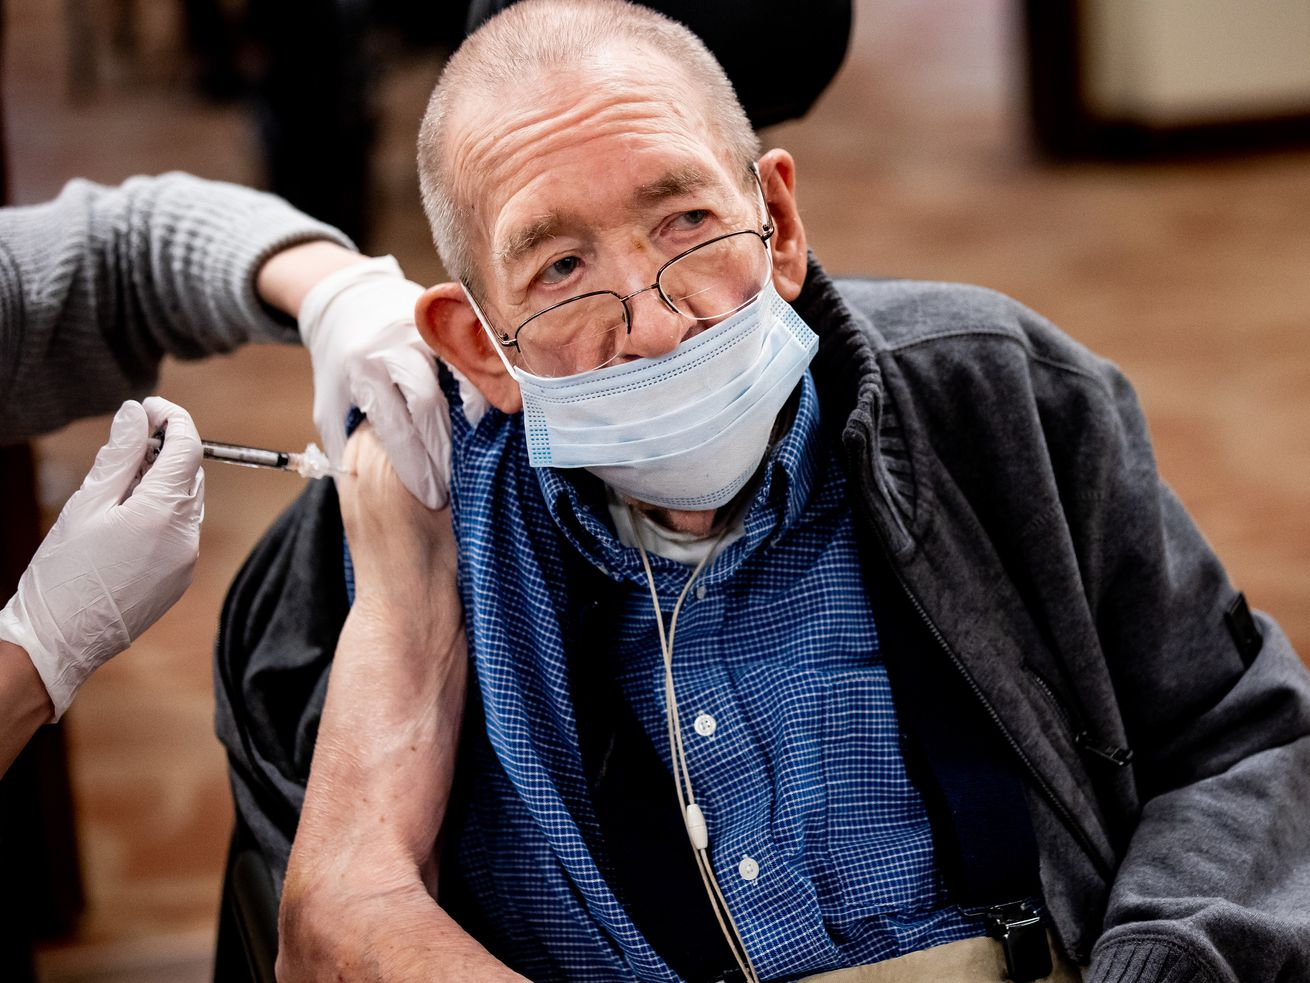 Herald Johnson, 89, receives his second dose of the Pfizer-BioNTech COVID-19 vaccine at The Lodge at North Ogden on Thursday, Feb. 11, 2021.